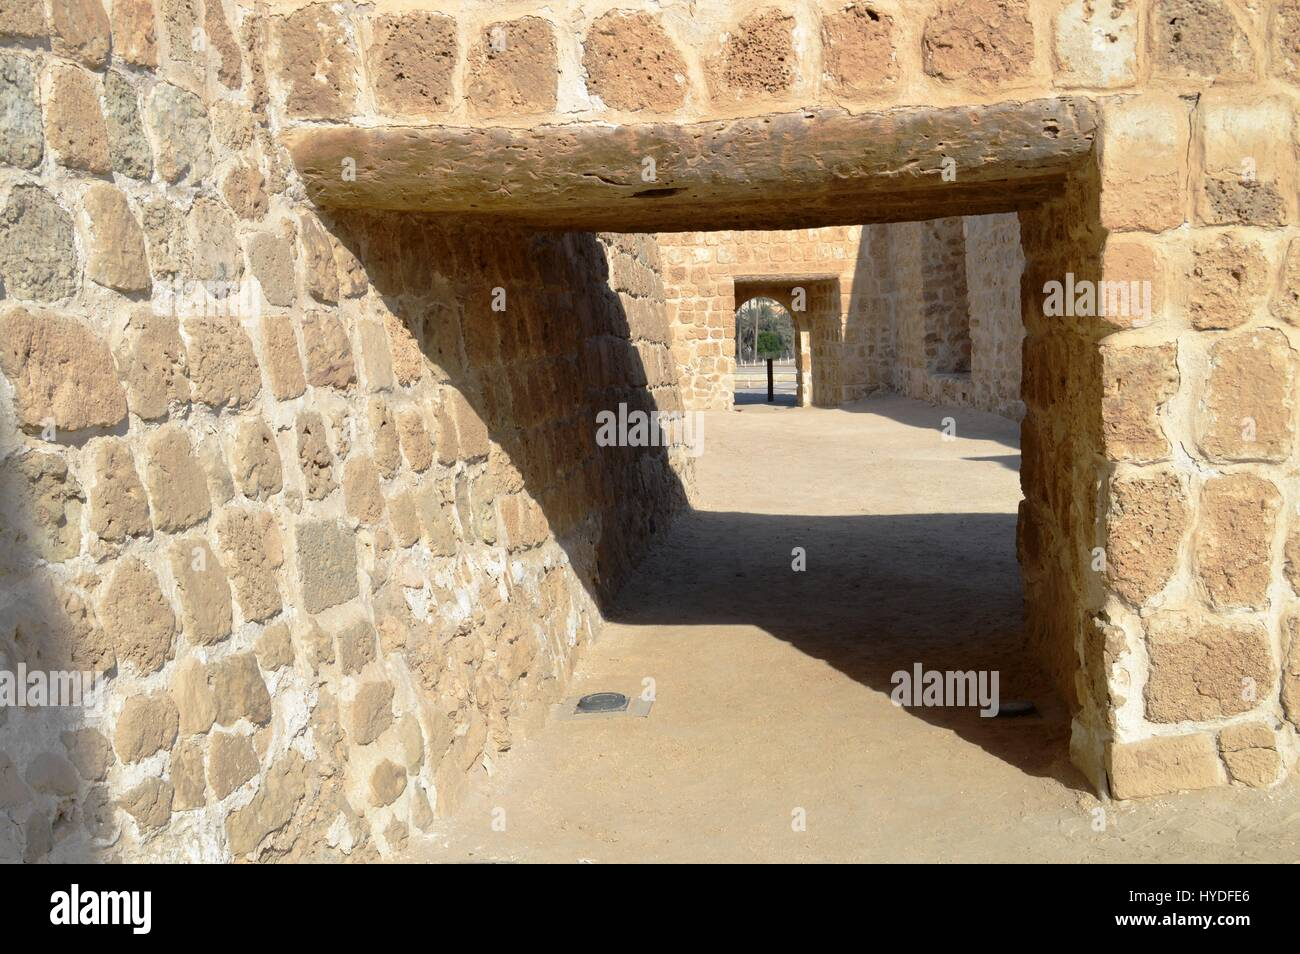 Trapezoidal passage way feature inside the Bahrain Fort at Al Qalah, Bahrain, in the Middle East. - Stock Image